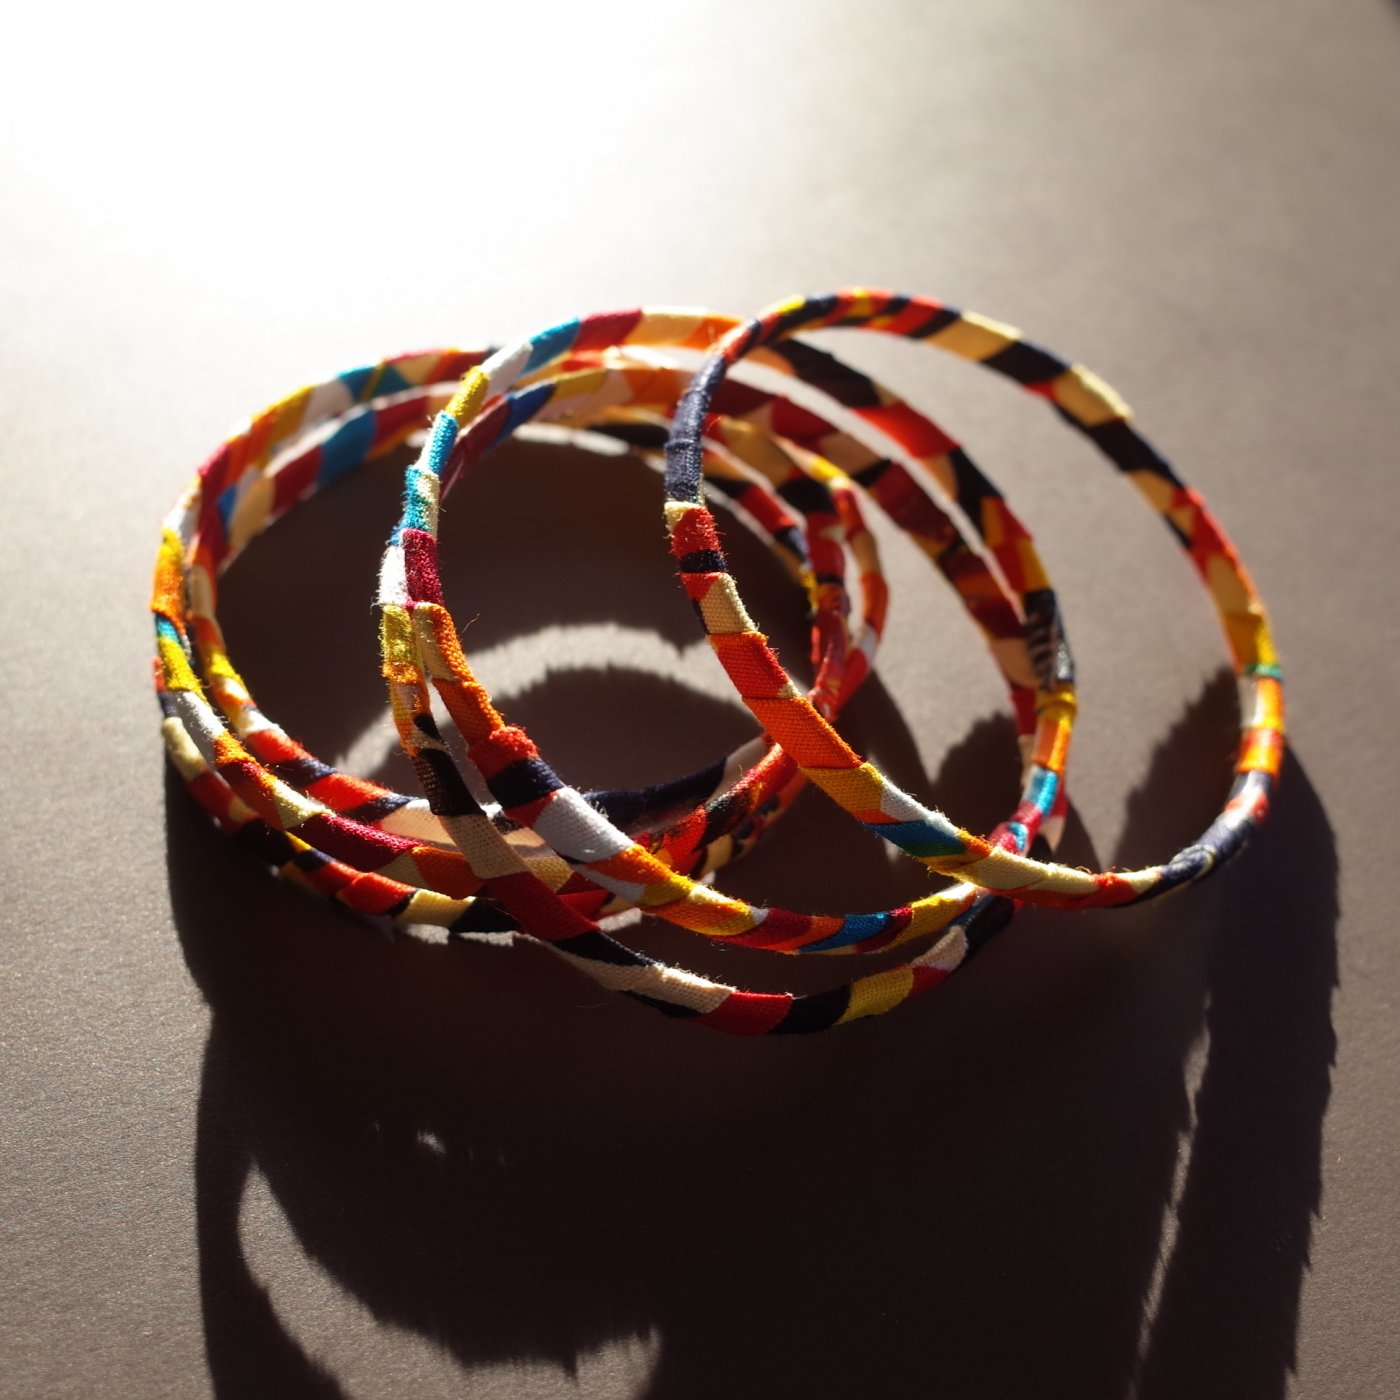 <img class='new_mark_img1' src='https://img.shop-pro.jp/img/new/icons5.gif' style='border:none;display:inline;margin:0px;padding:0px;width:auto;' />AFRICAN PRINT BRACELET 1PIECE-HANDMADE BY SENEGALESE-